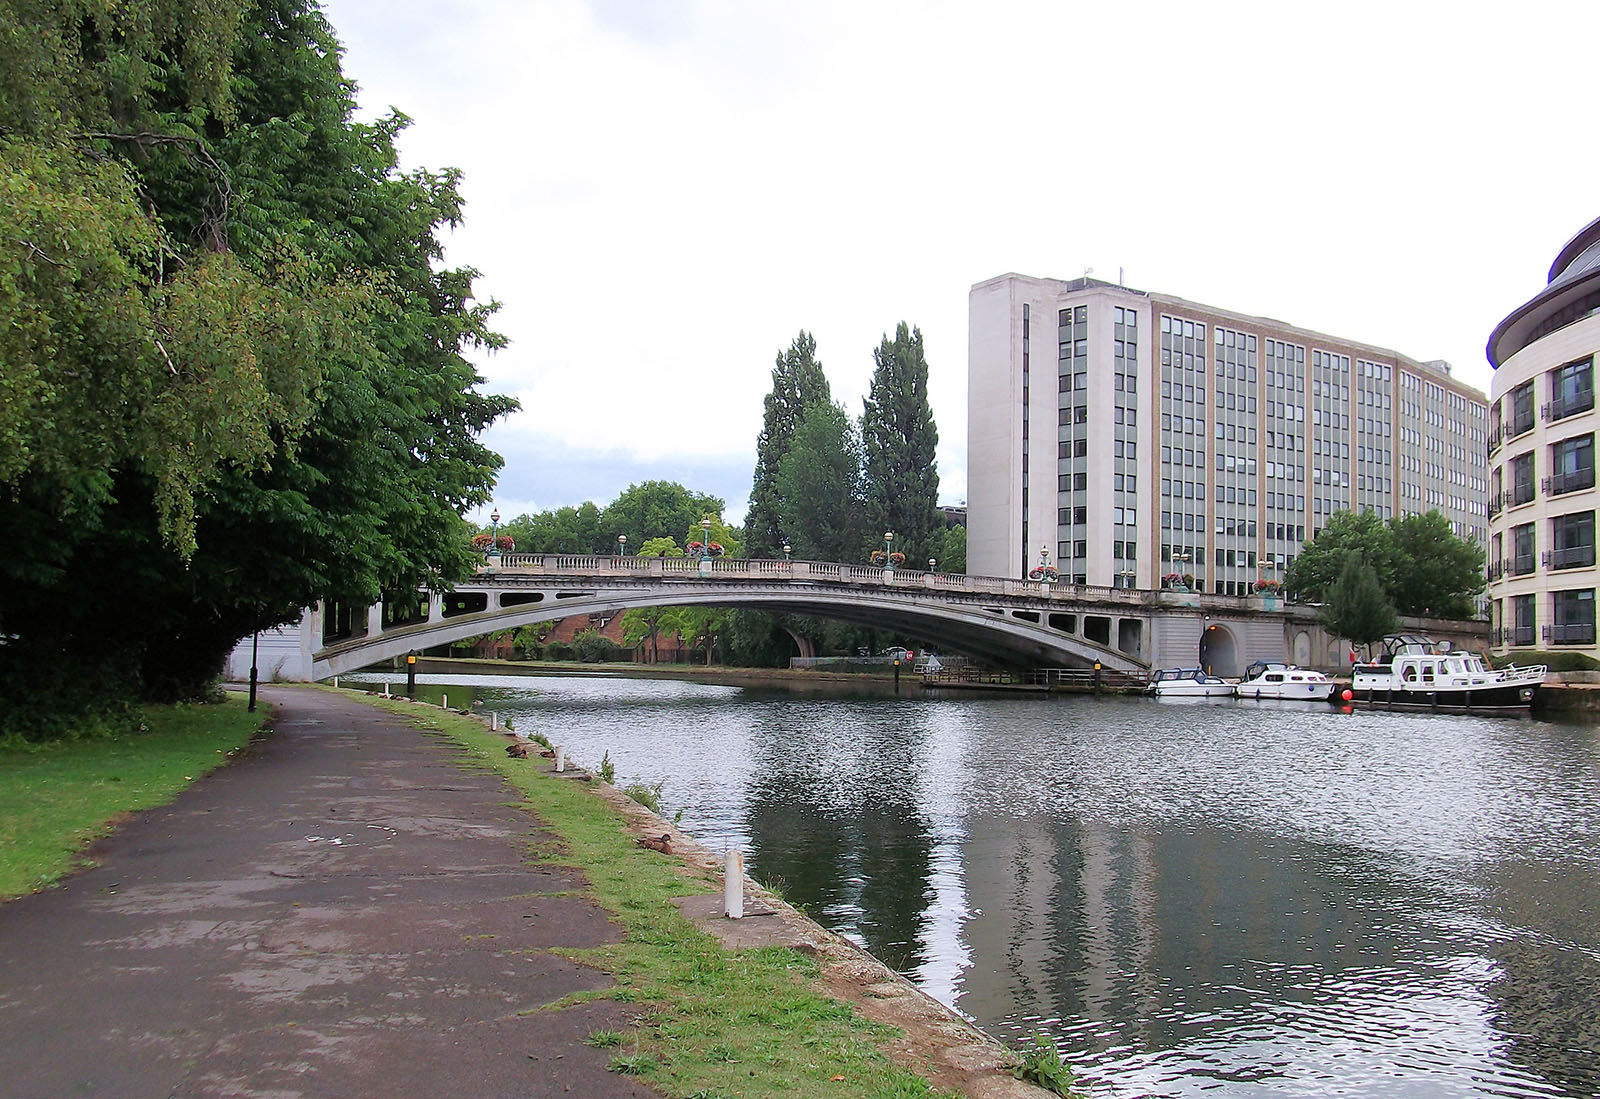 Reading Bridge is a road bridge over the River Thames at Reading in the English county of Berkshire.